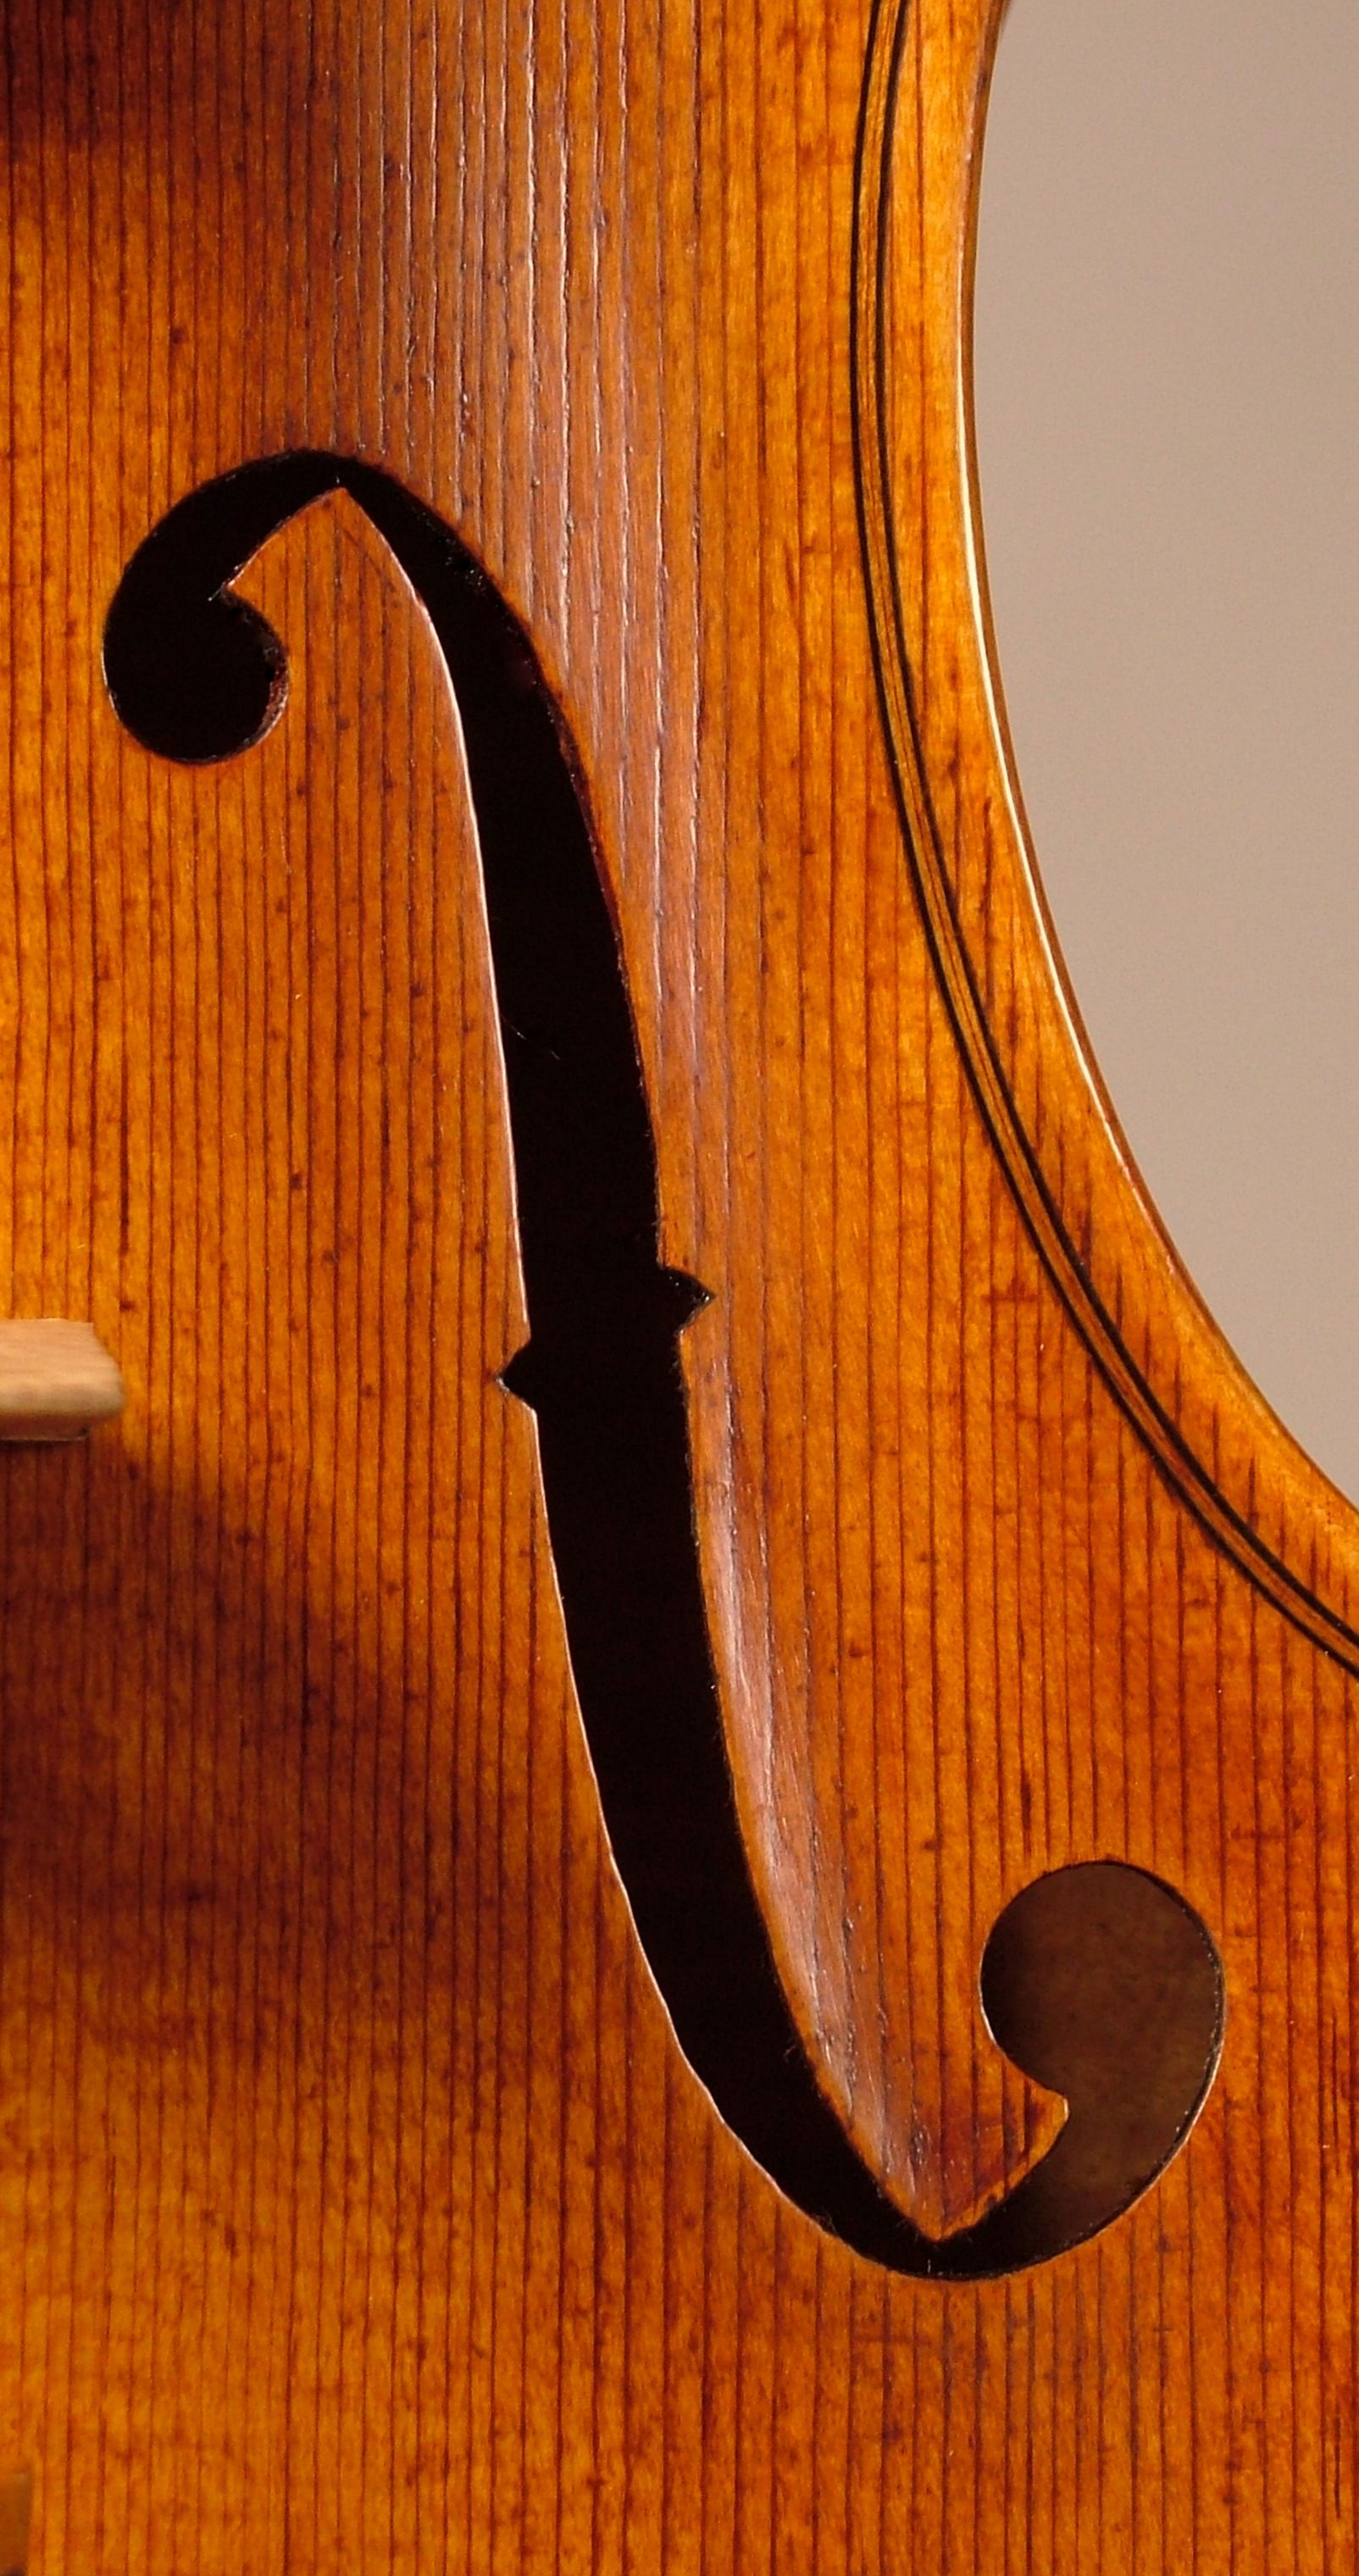 how to tune a violin without a tuner